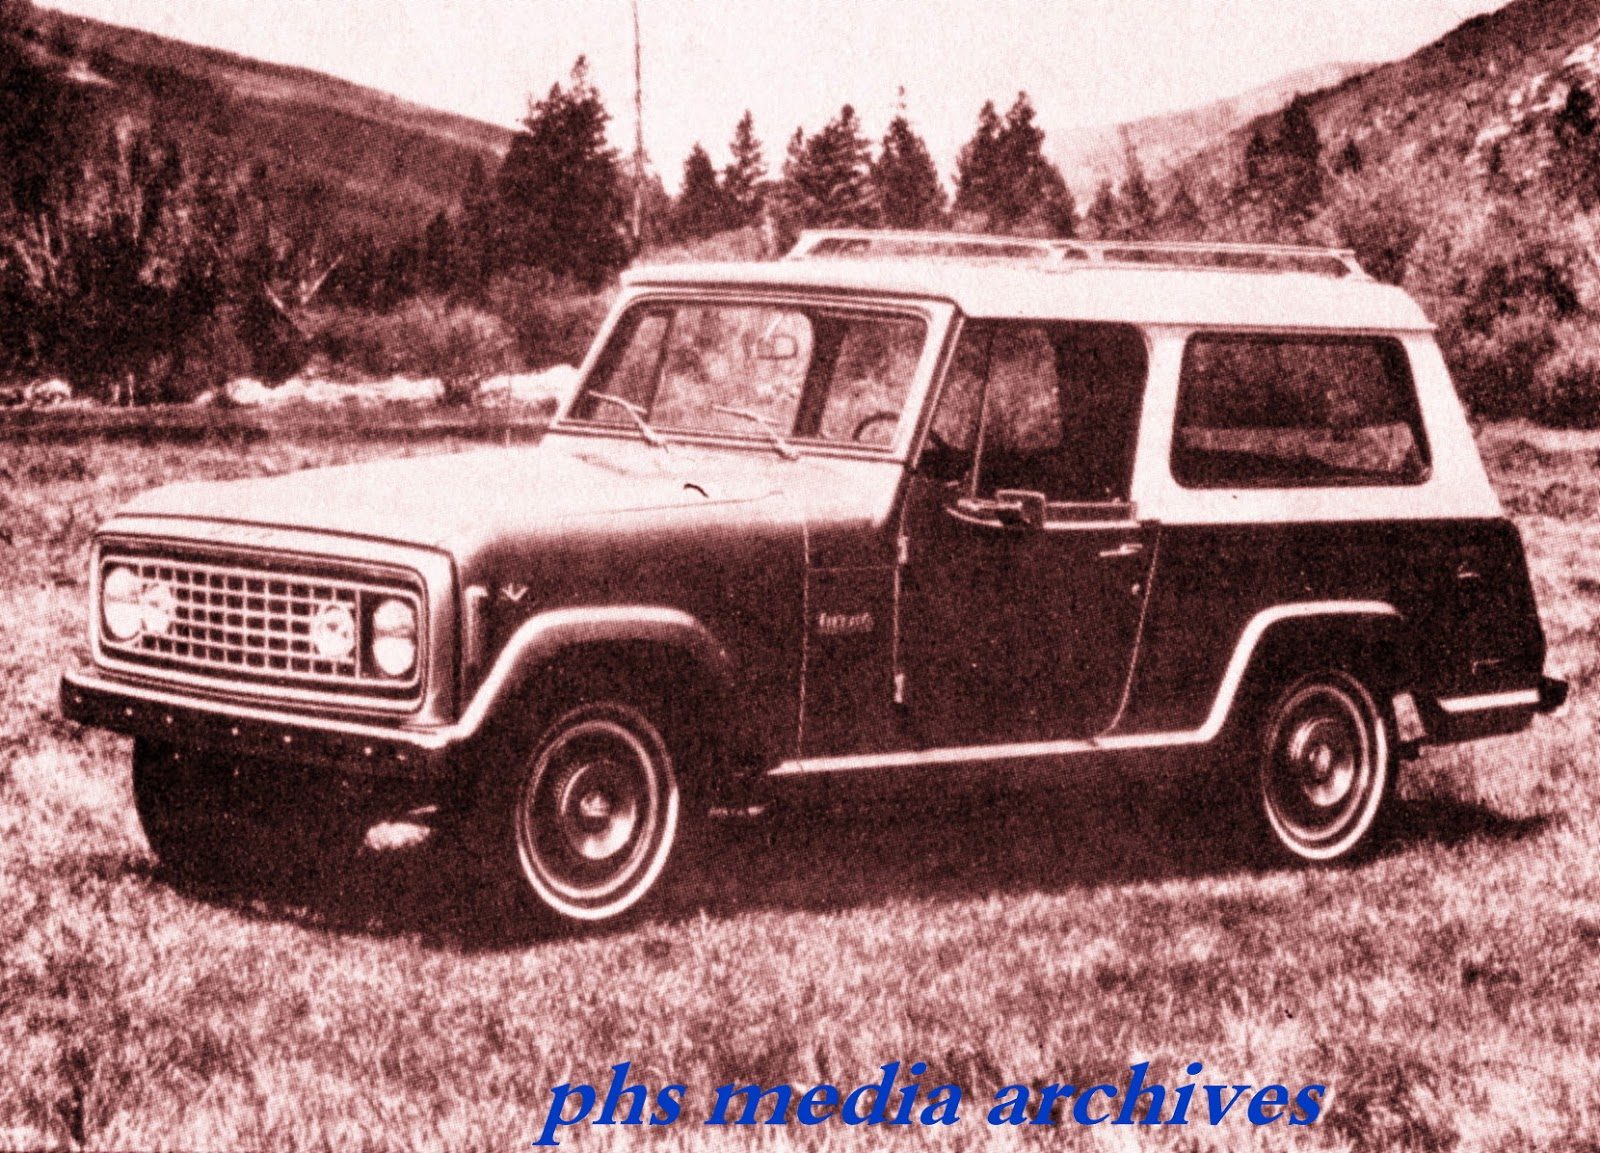 Phscollectorcarworld June 2017 Toyota 22r Carburetor Diagram Ponycars Amc Added Their Own Special Styling To Jeepster And Called It Commando In 1972 Powered By Engines Now The Vehicle Looked Like An Ugy Copy Of